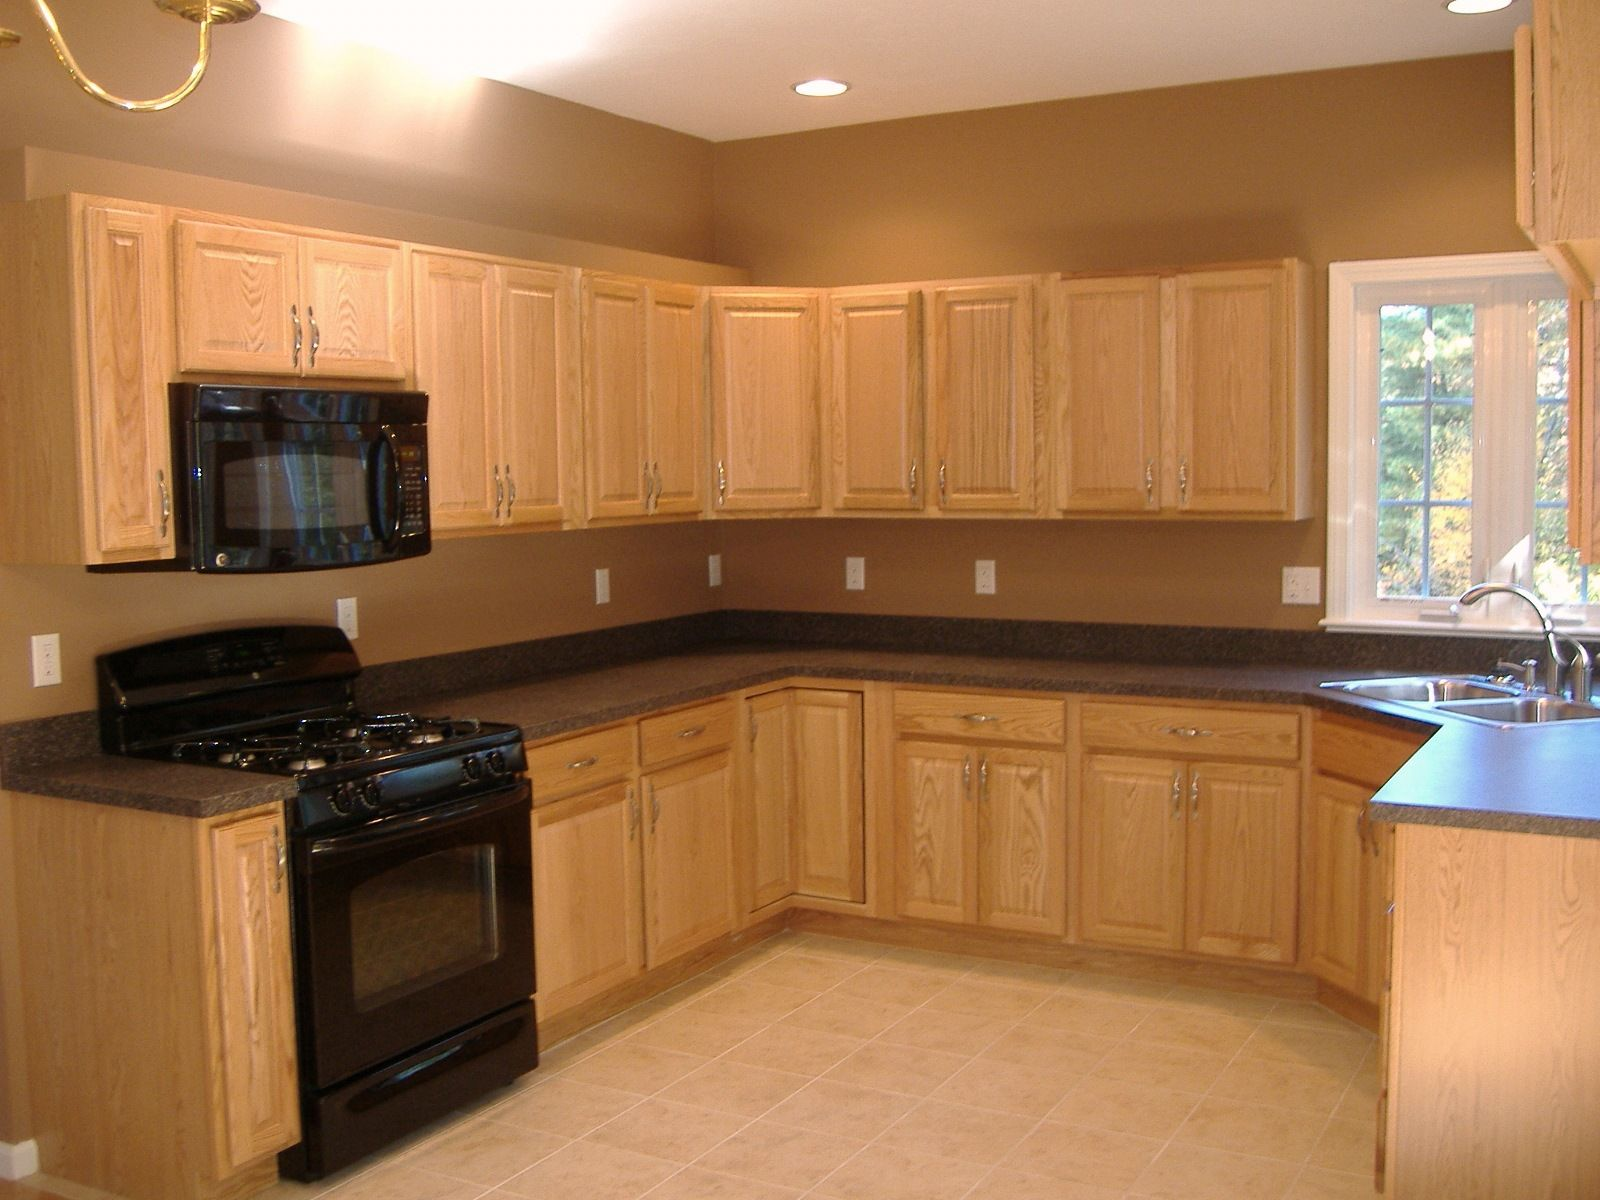 Kitchen featured in The Country View By Fafard Real Estate in Boston, MA